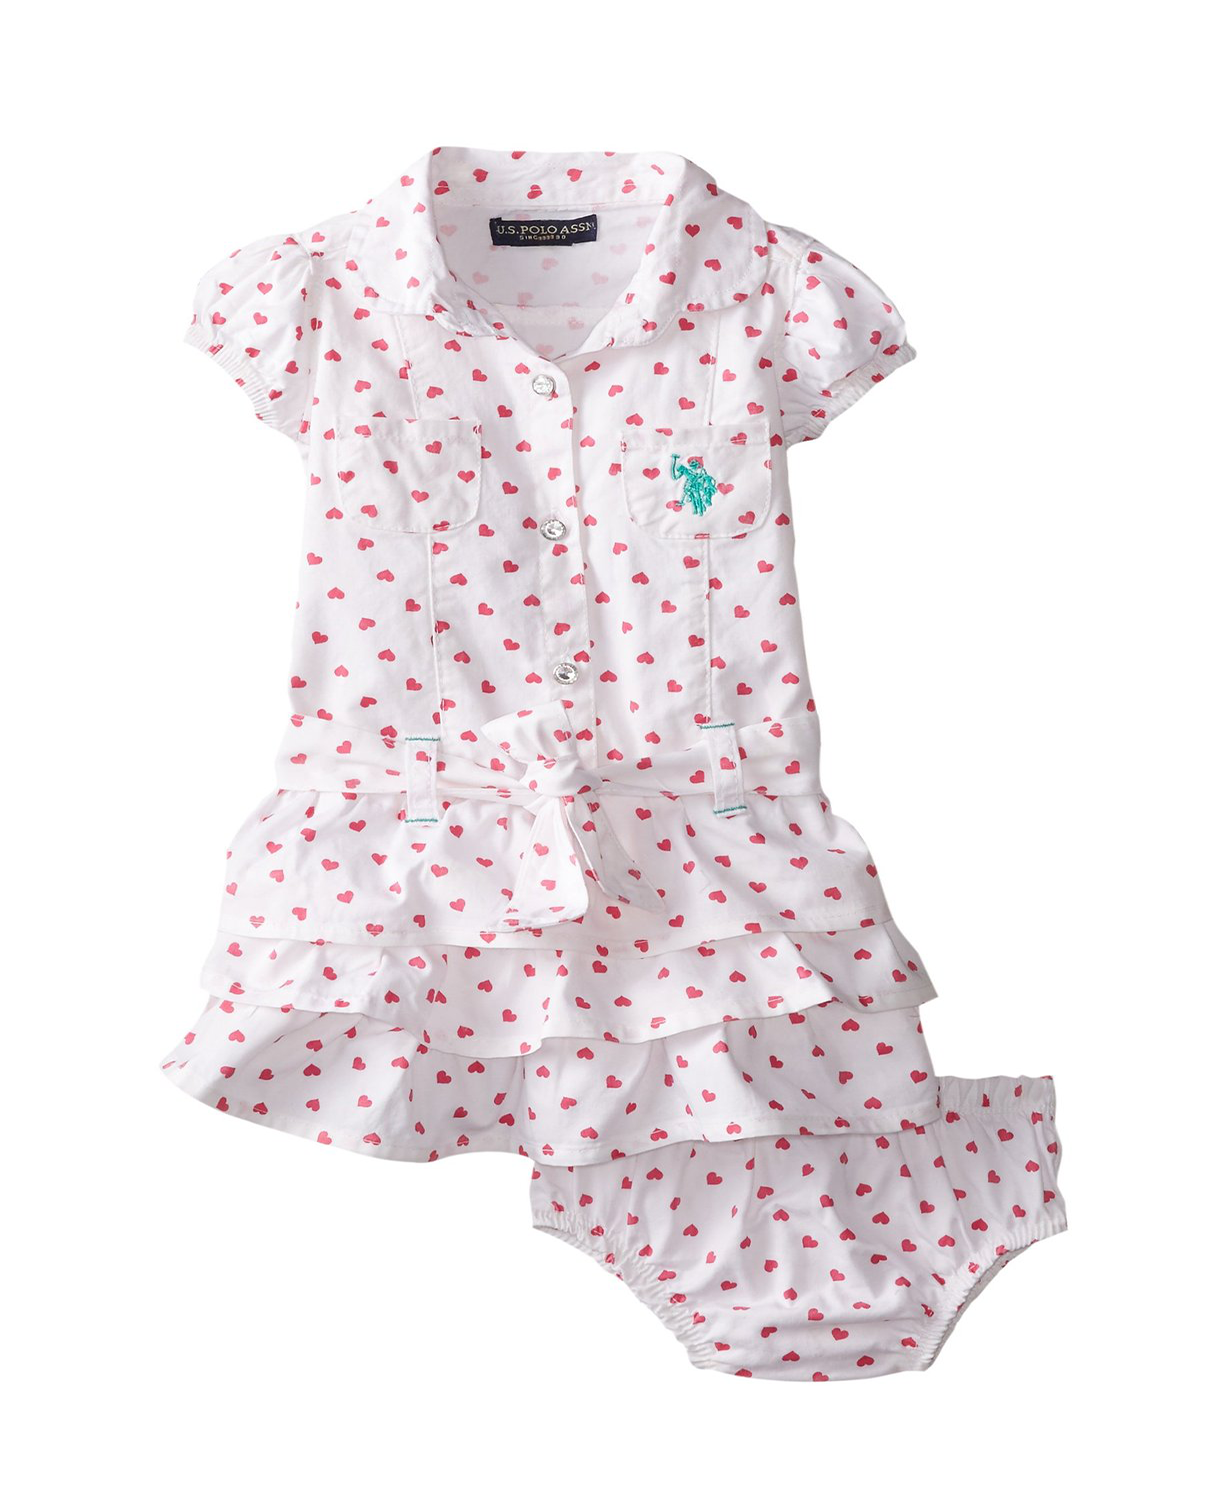 Baby Girls' Clothing from specialtysports.ga Whether you need a breathable bodysuit set for a sunny day at the park or a ruffled dress and diaper cover for a special occasion, specialtysports.ga offers a wide selection of essentials when it comes to baby girls' clothing.